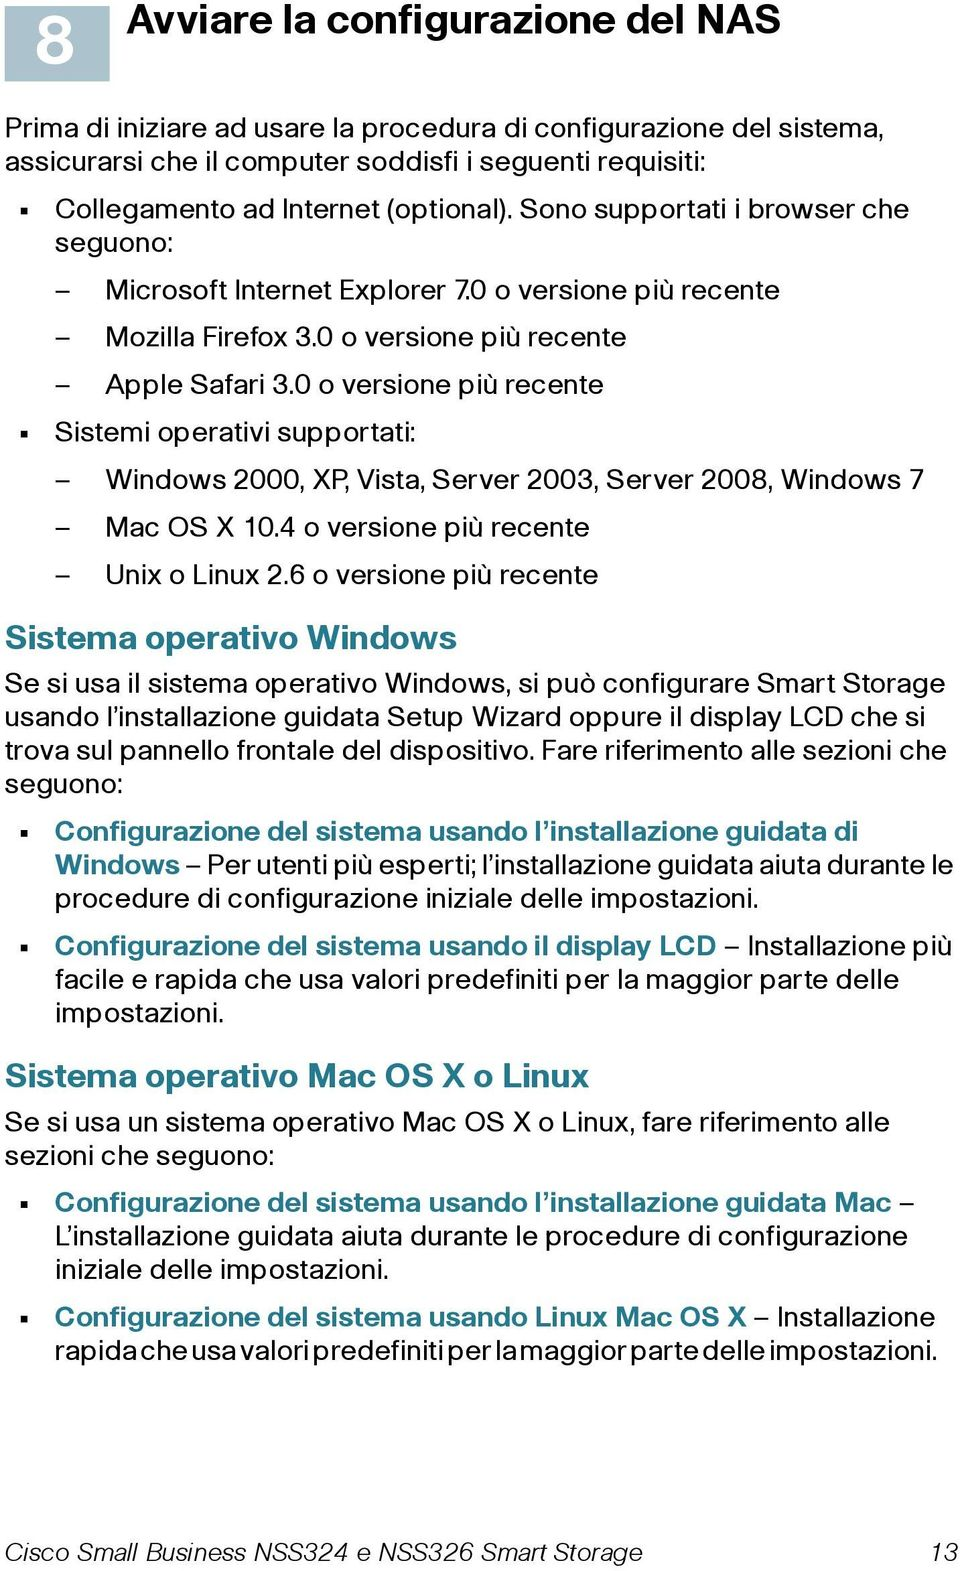 0 o versione più recente Sistemi operativi supportati: Windows 2000, XP, Vista, Server 2003, Server 2008, Windows 7 Mac OS X 10.4 o versione più recente Unix o Linux 2.